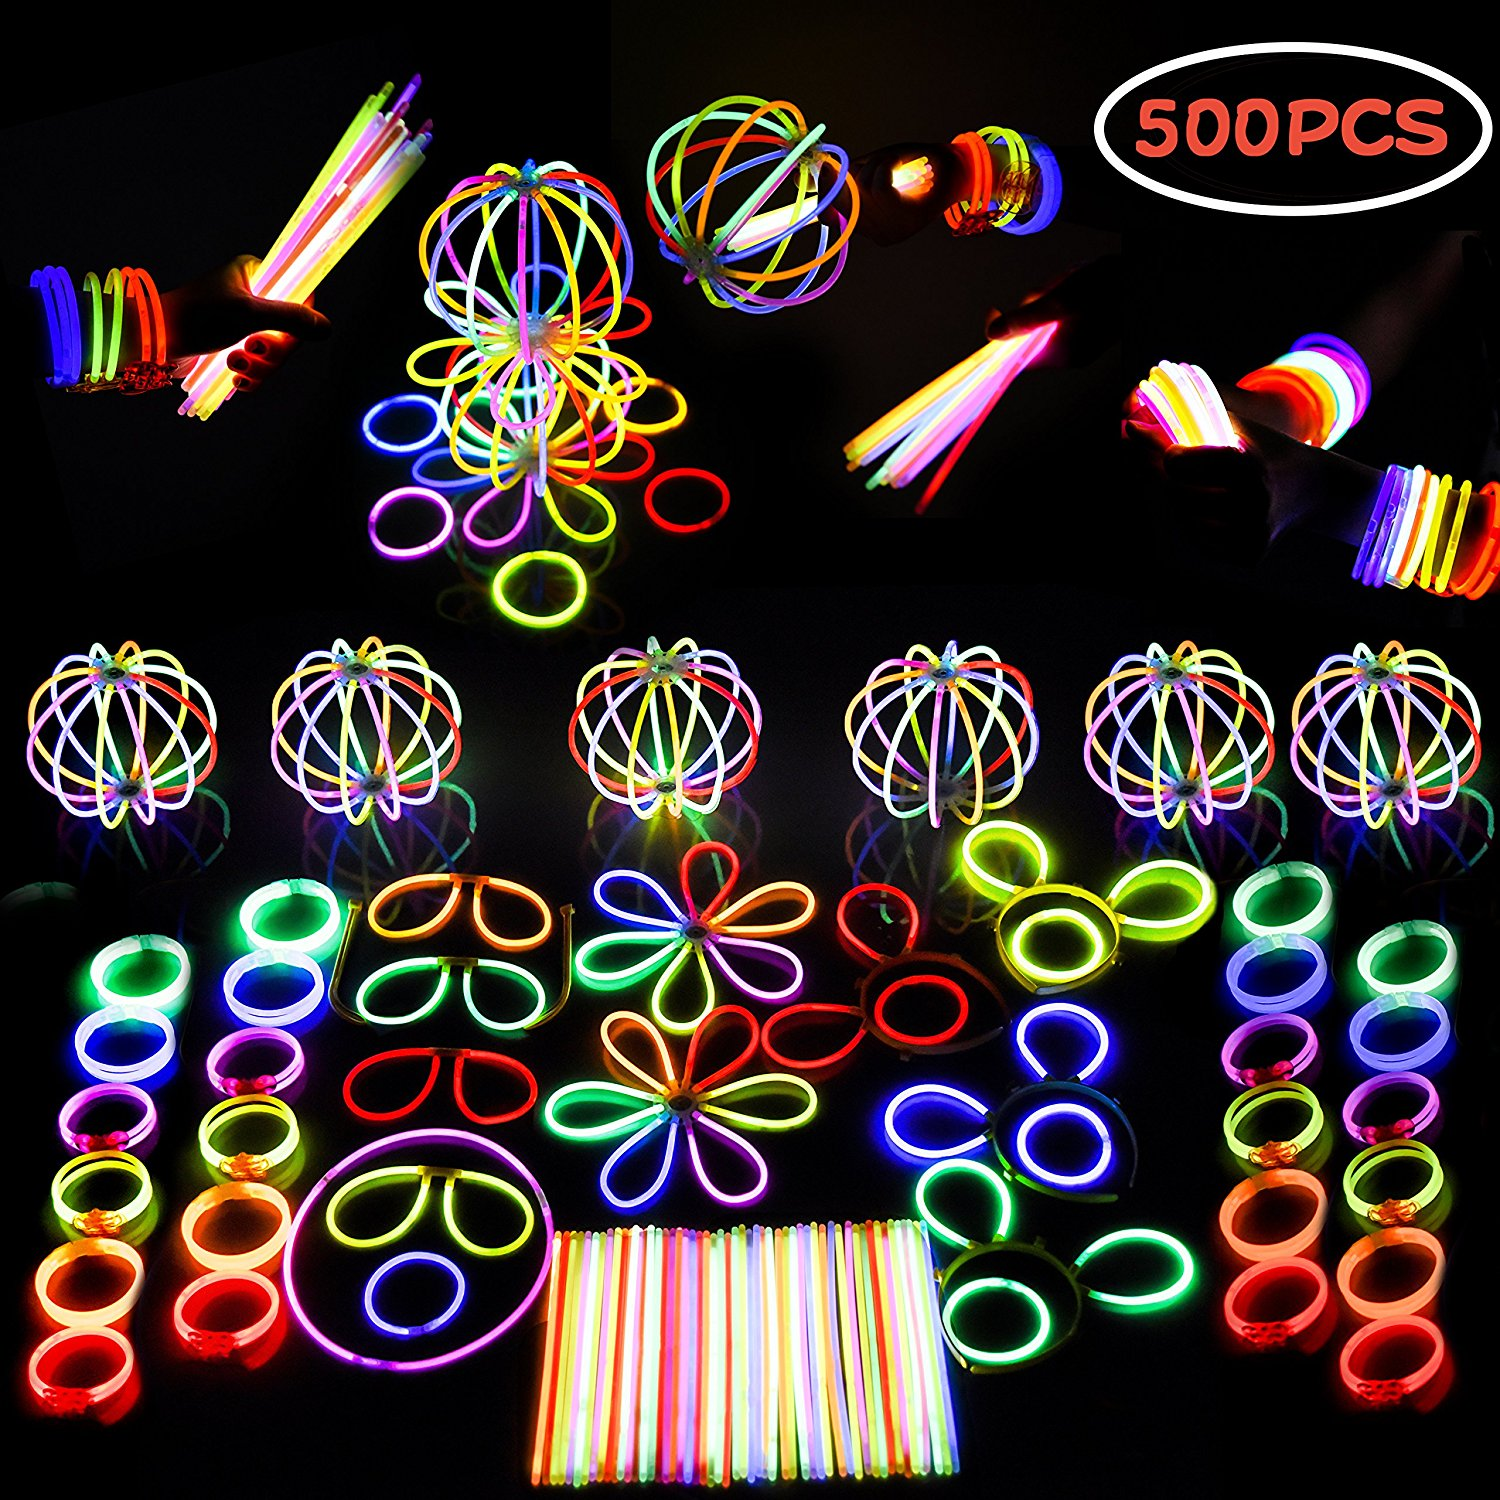 Glow Stick Party Favors Bulk LED Light Up Birthday Party Supplies Includes Glowsticks, Bracelets, Glasses, Butterfly Hair Clip Accessories, Hair Clasp Illuminate Party Kit ;Easter Egg Fillers F-120